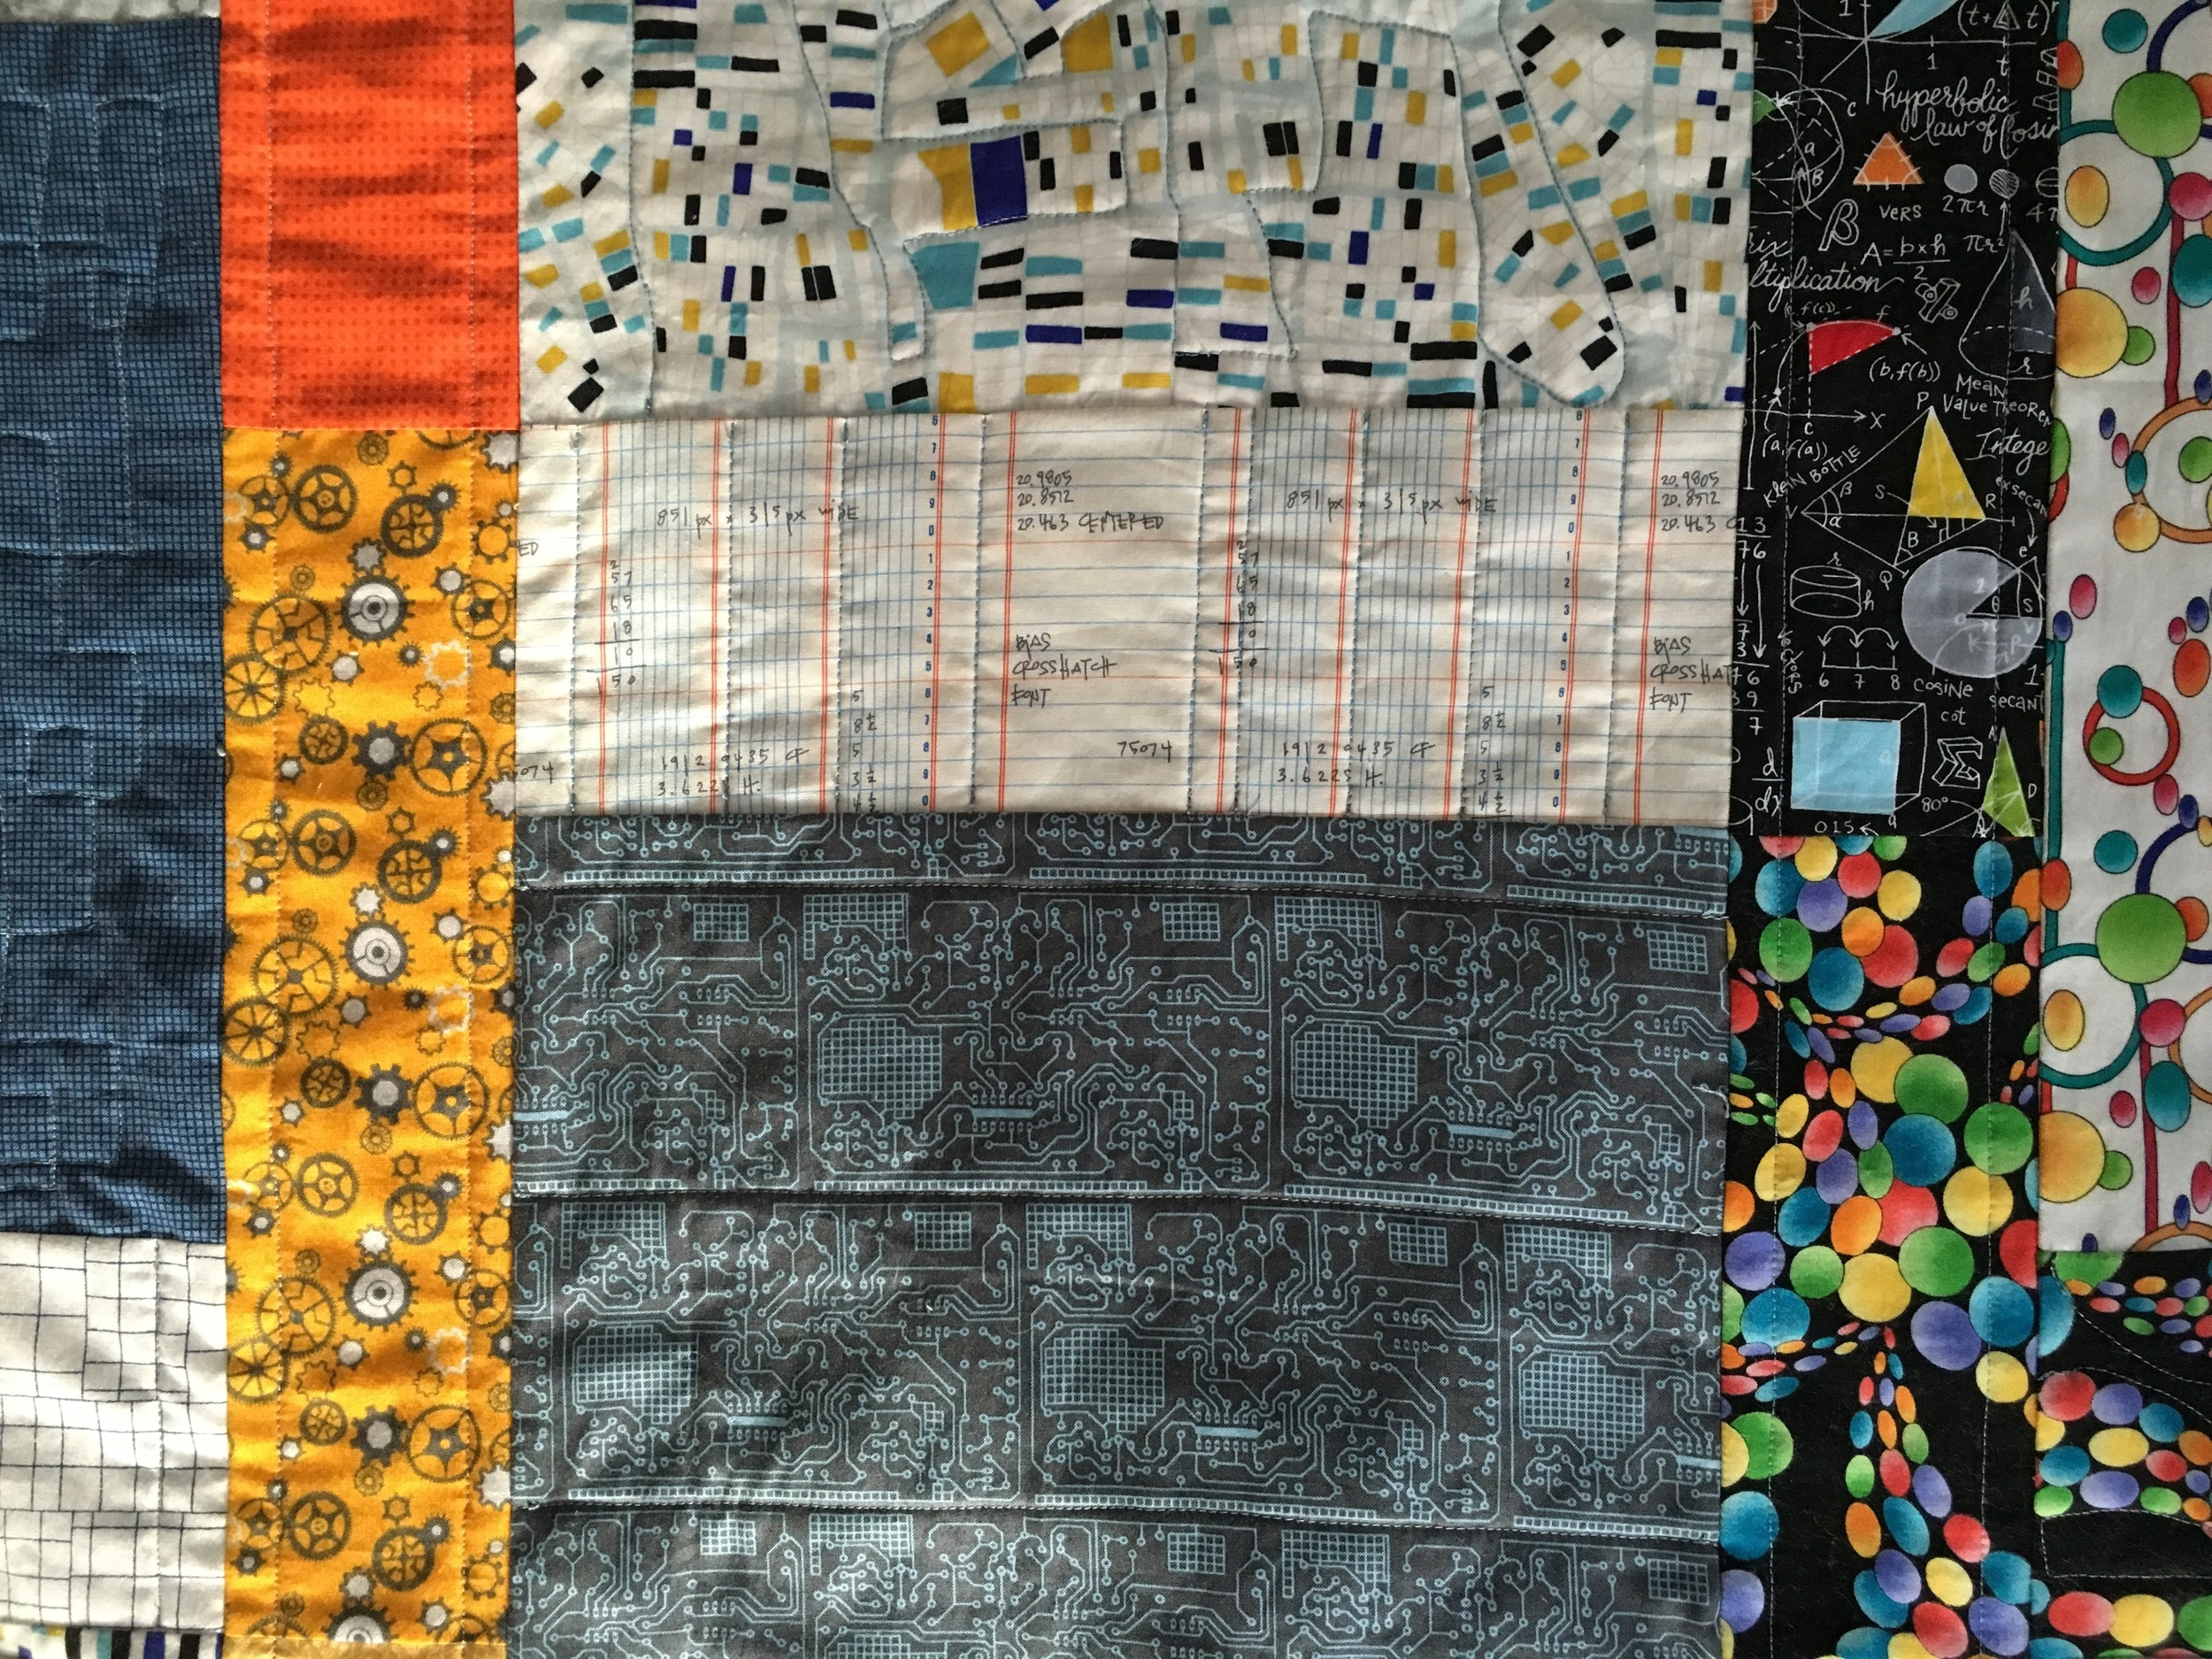 Detail of the blocks and quilting